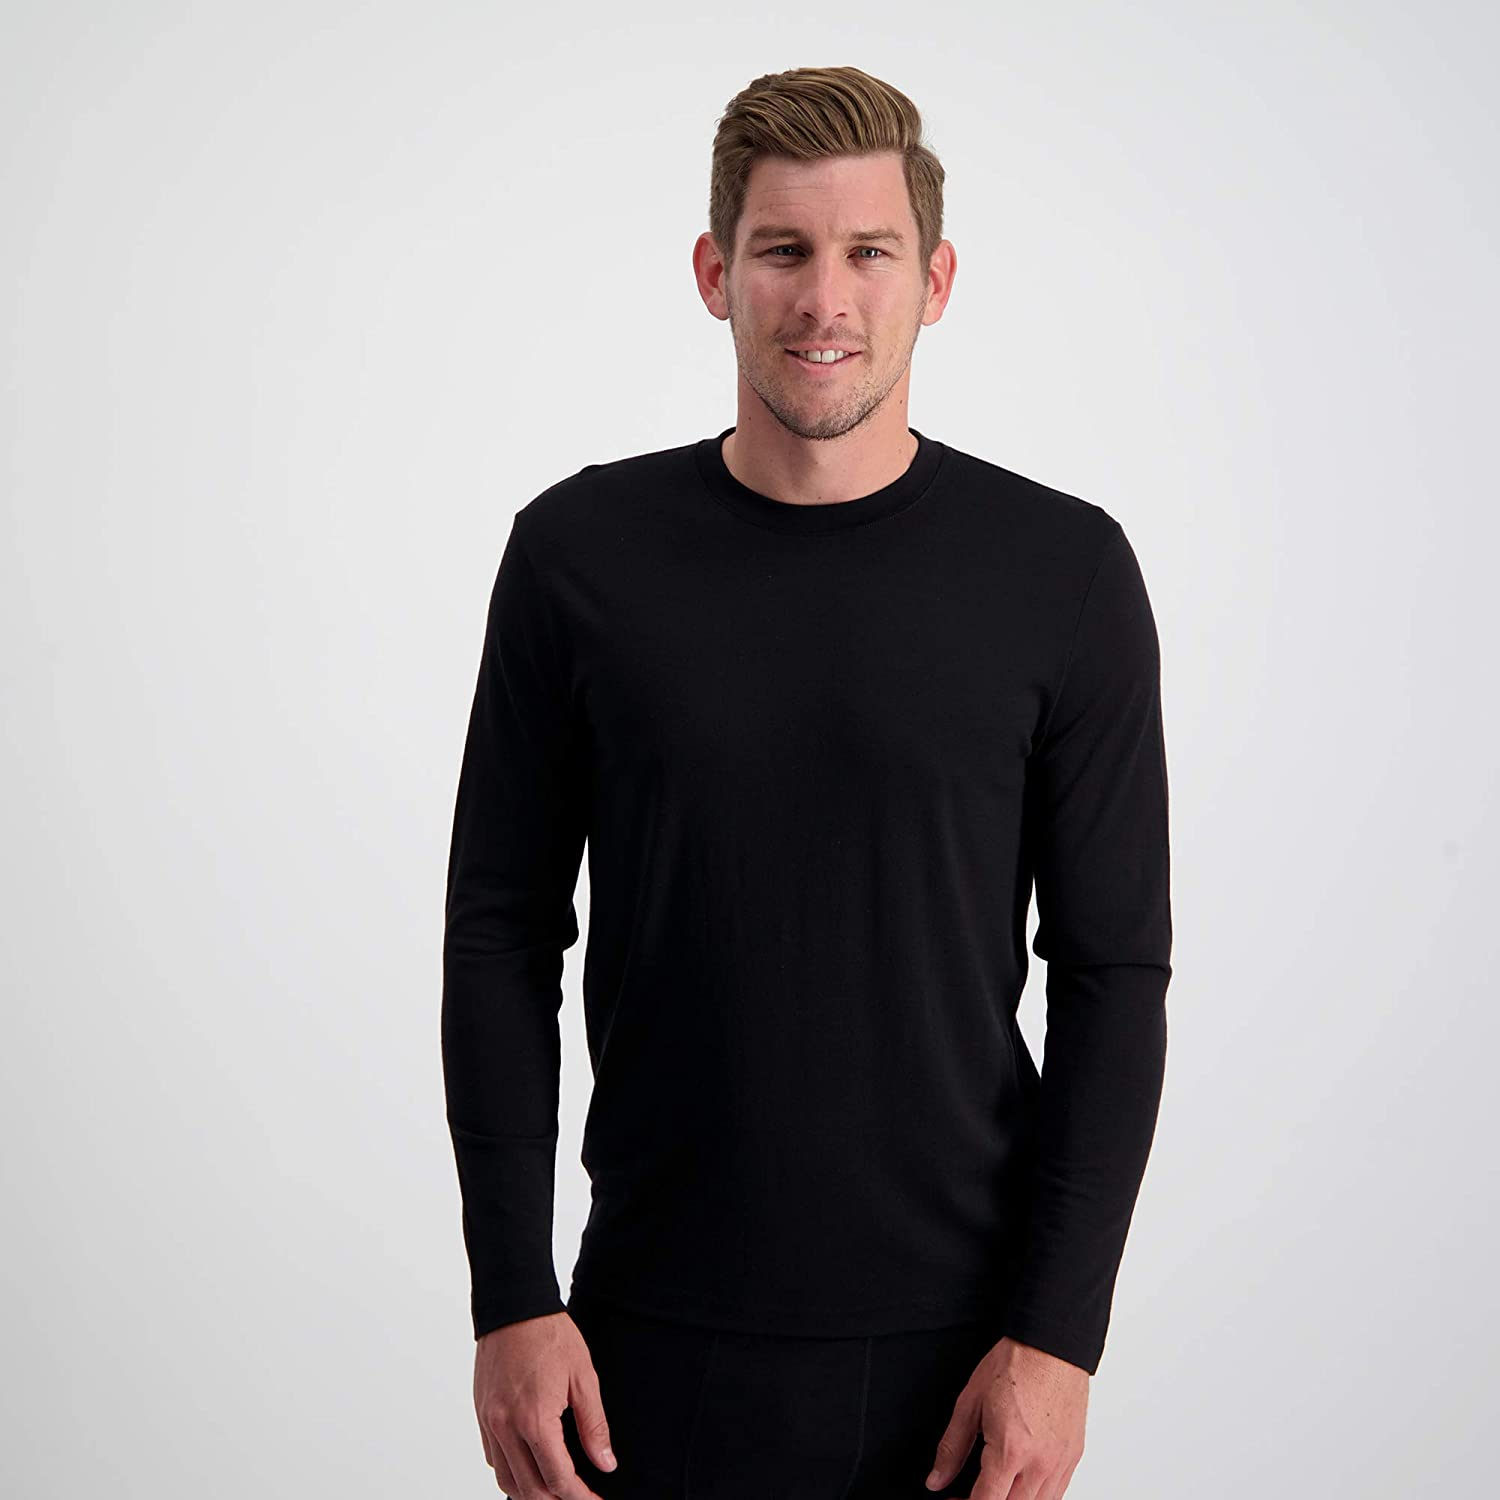 Mens 100% Pure Soft Merino Thermal Base Layer Wool Top Black or Charcoal